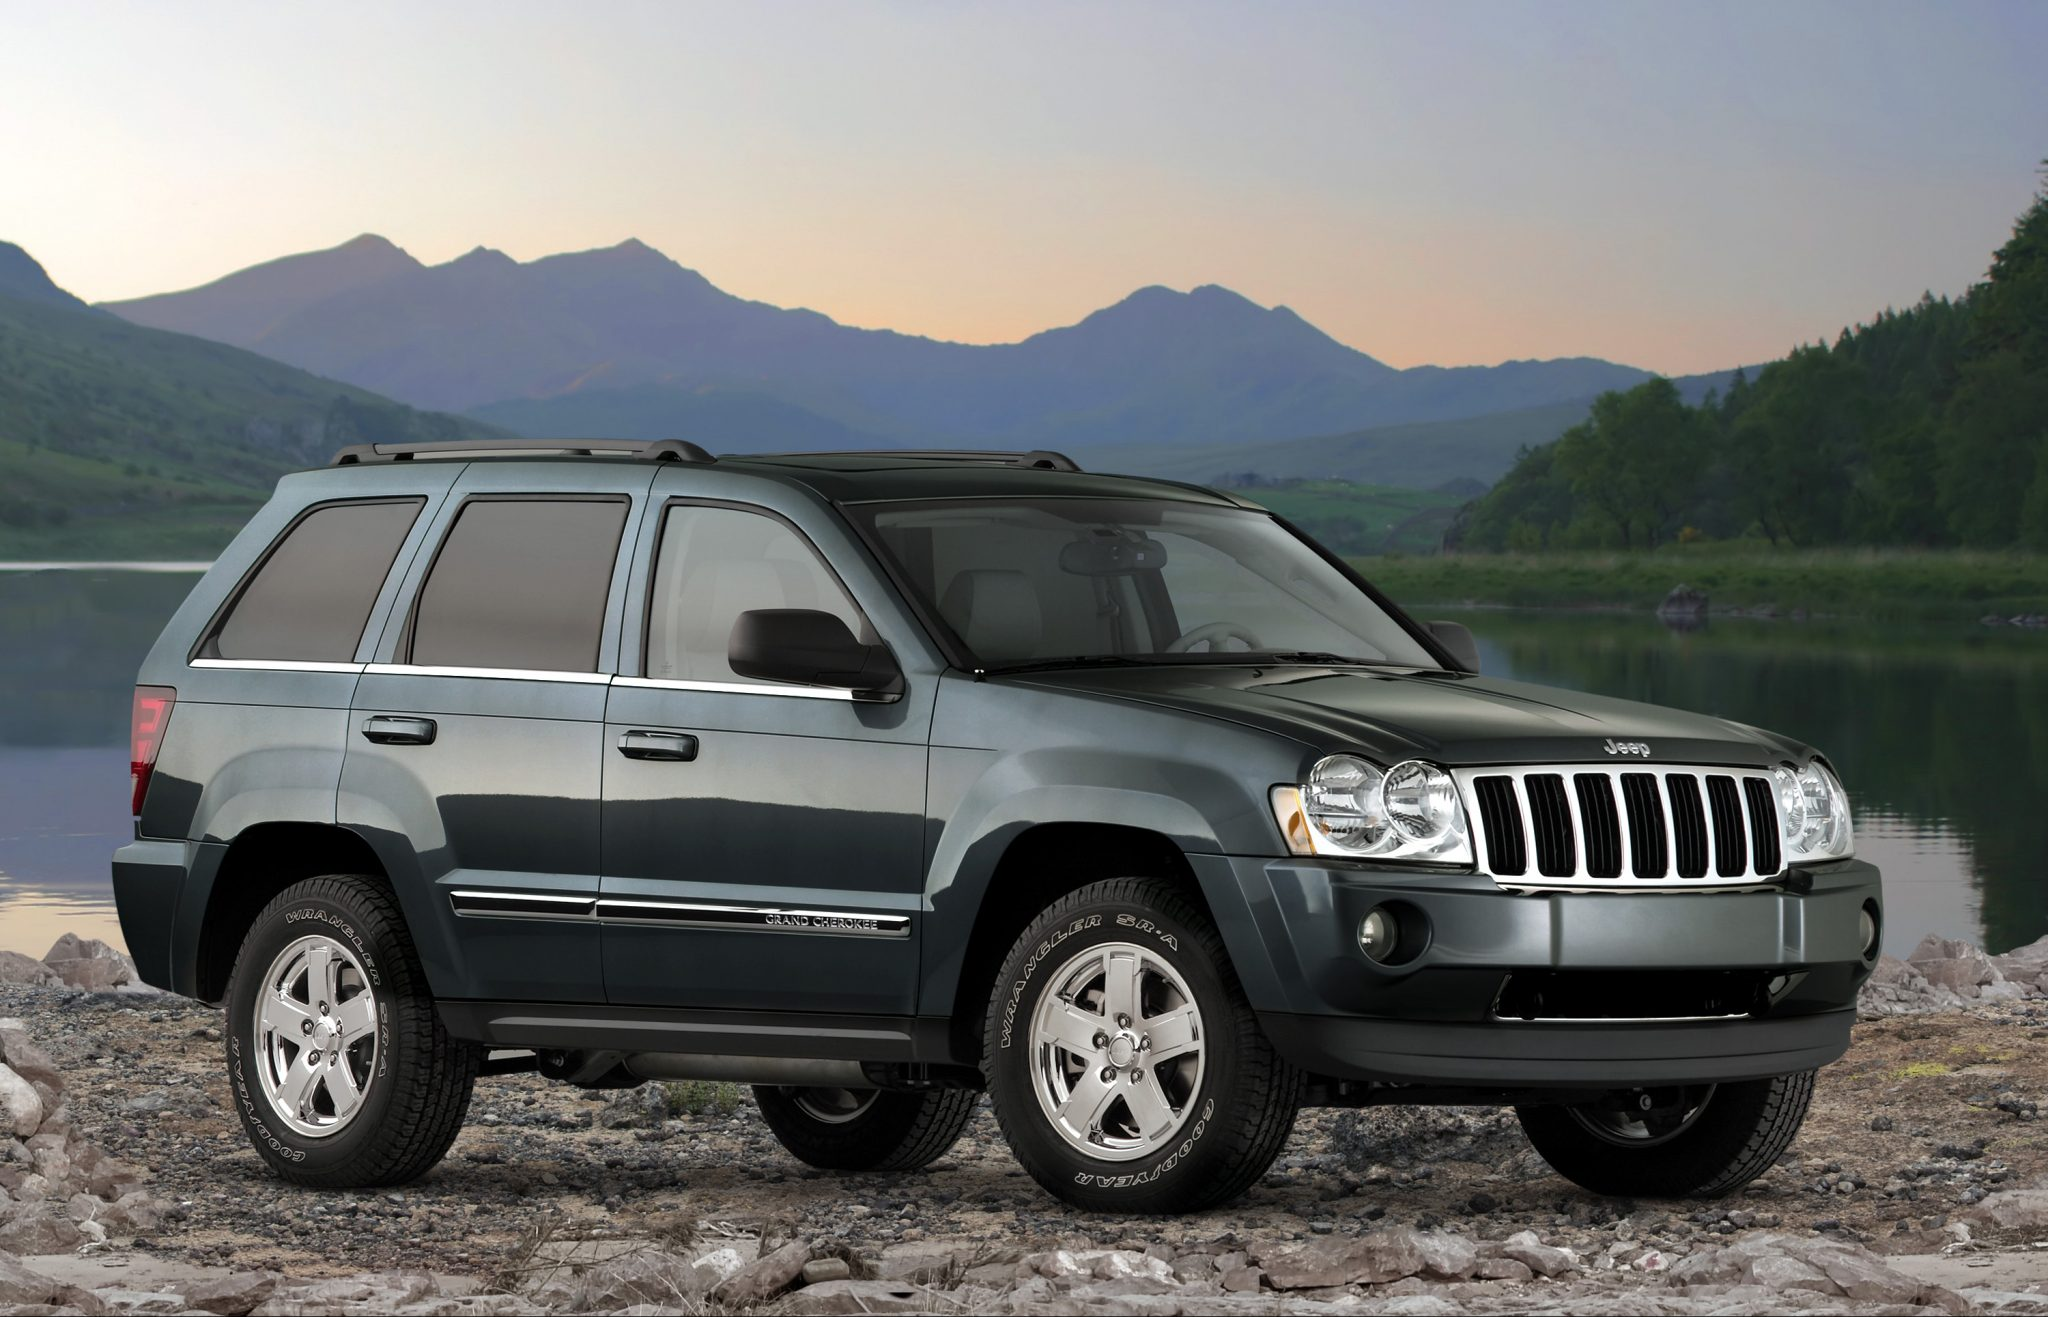 The 2007 Jeep Cherokee is among the models affected by the Chrysler ignition switch issue.